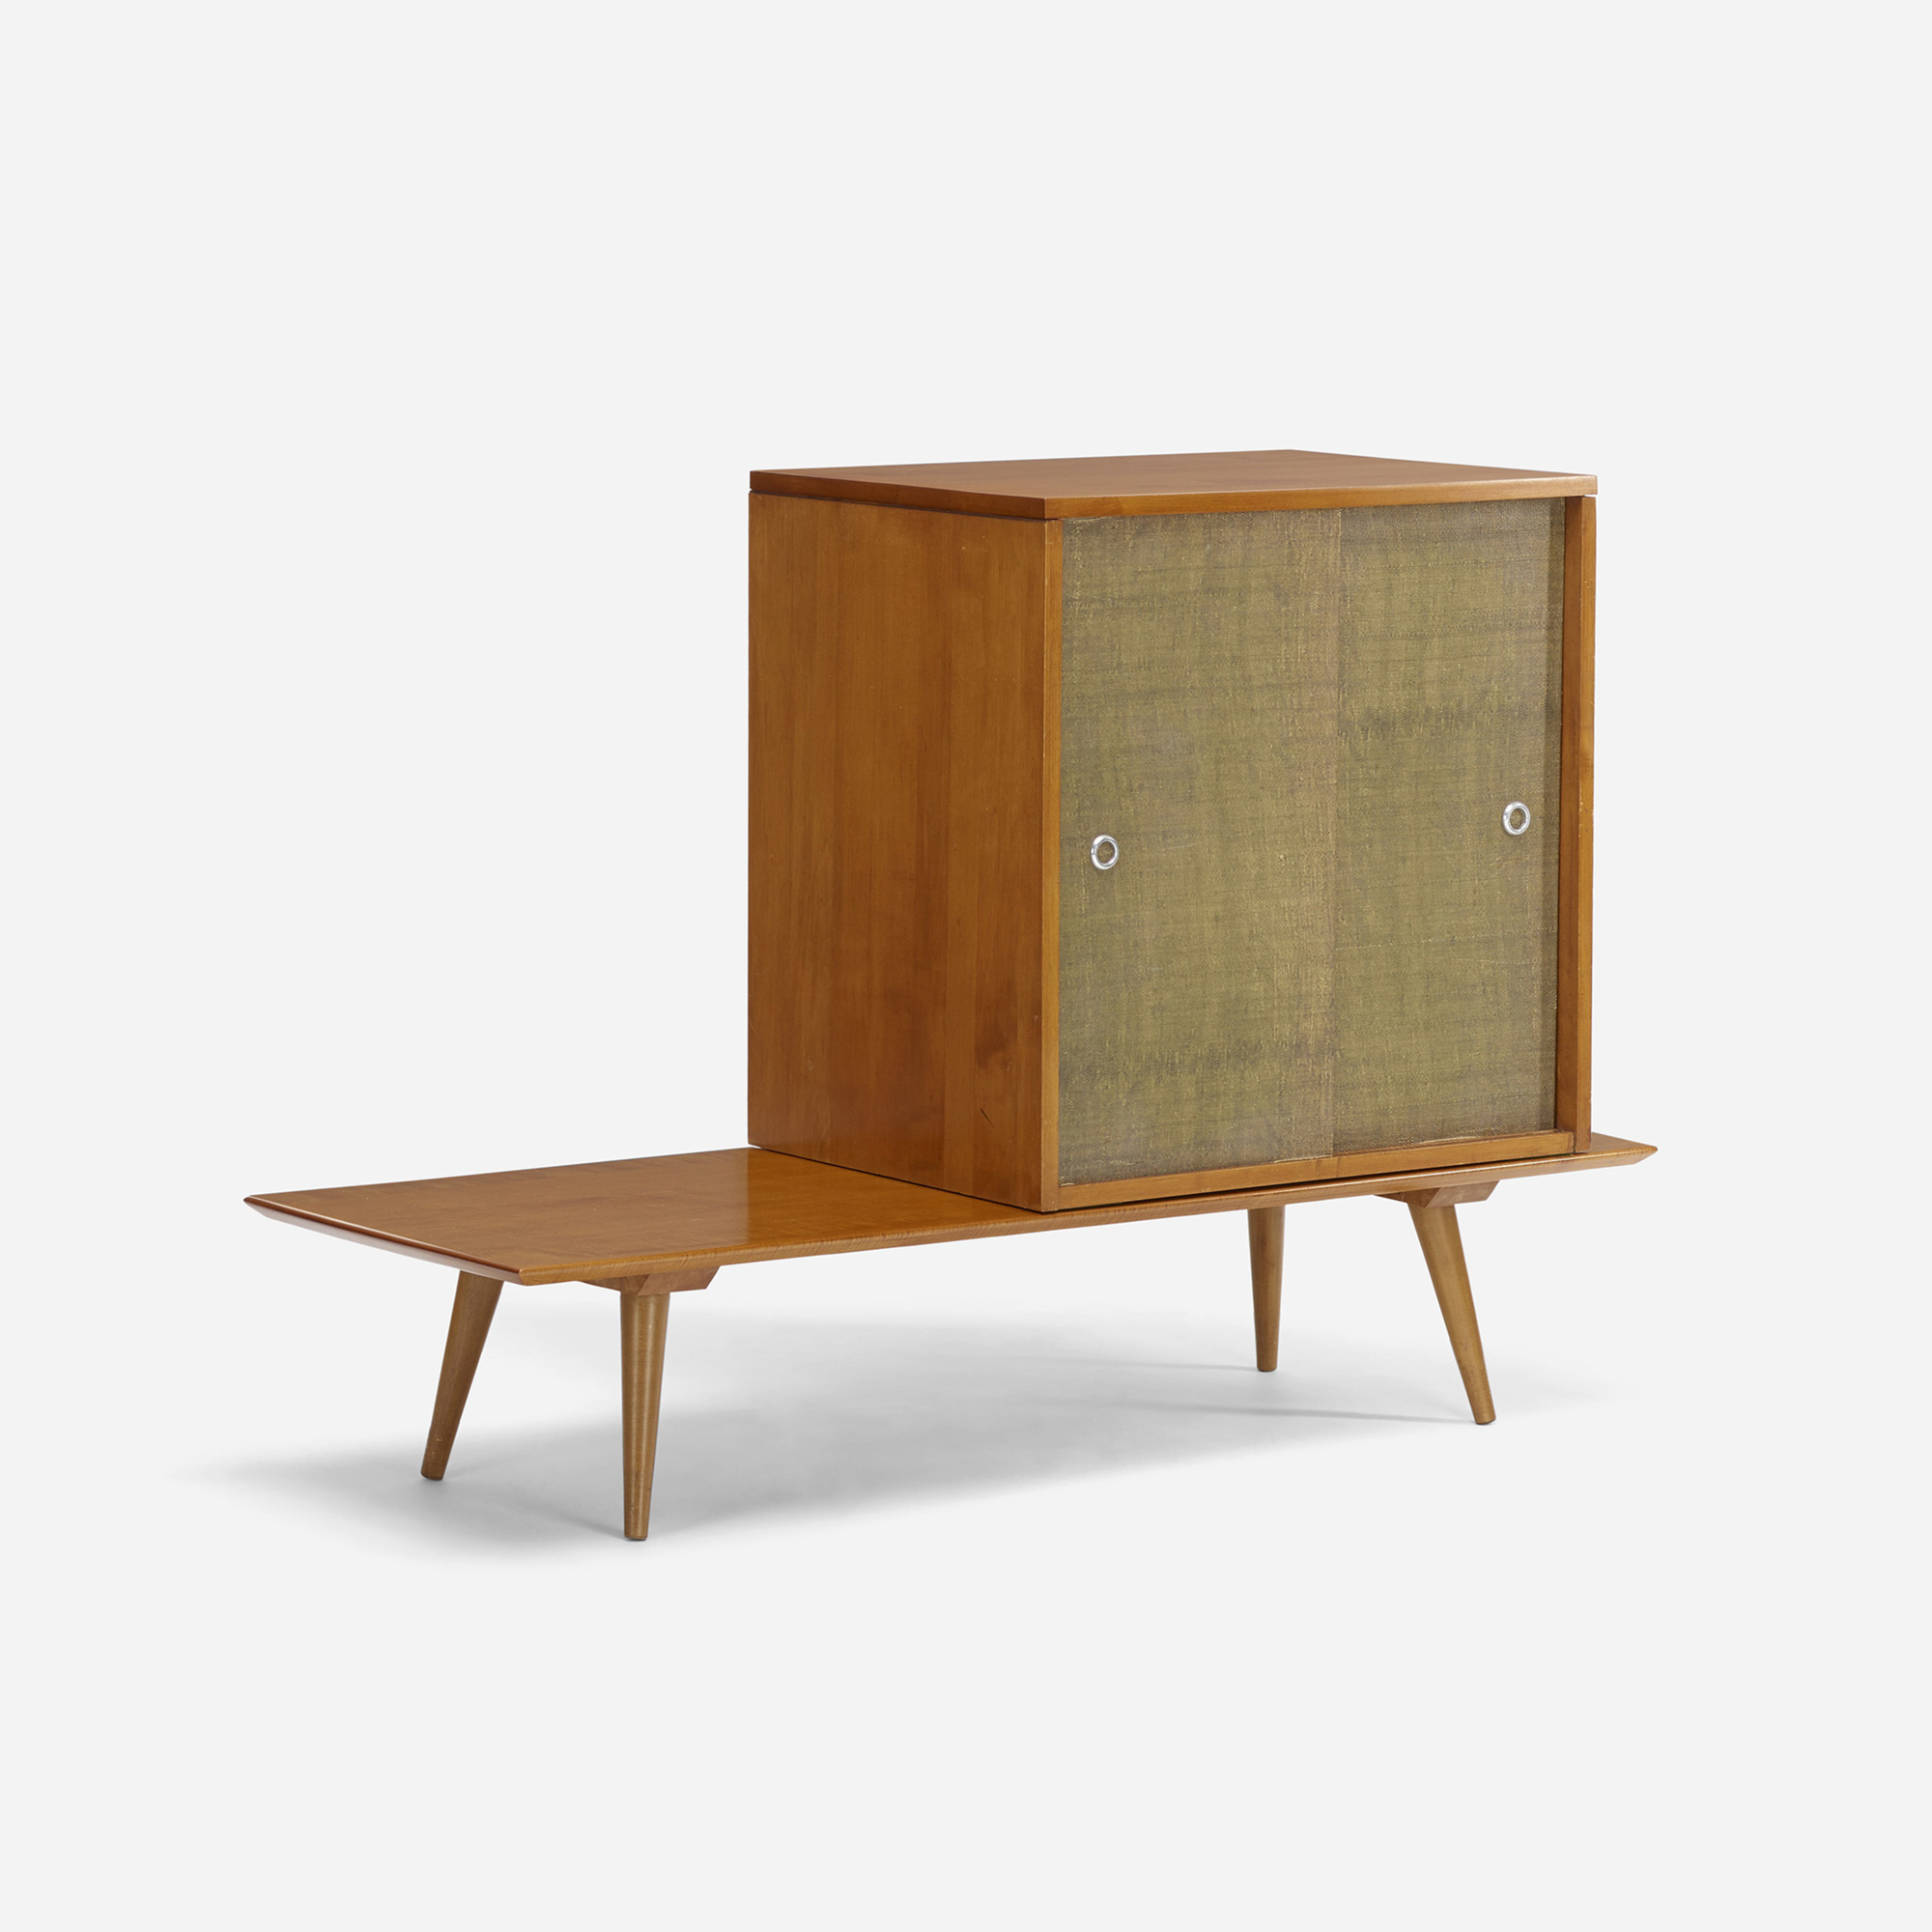 Elegant 304: Paul McCobb / Planner Group Cabinet And Table (1 Of 3)